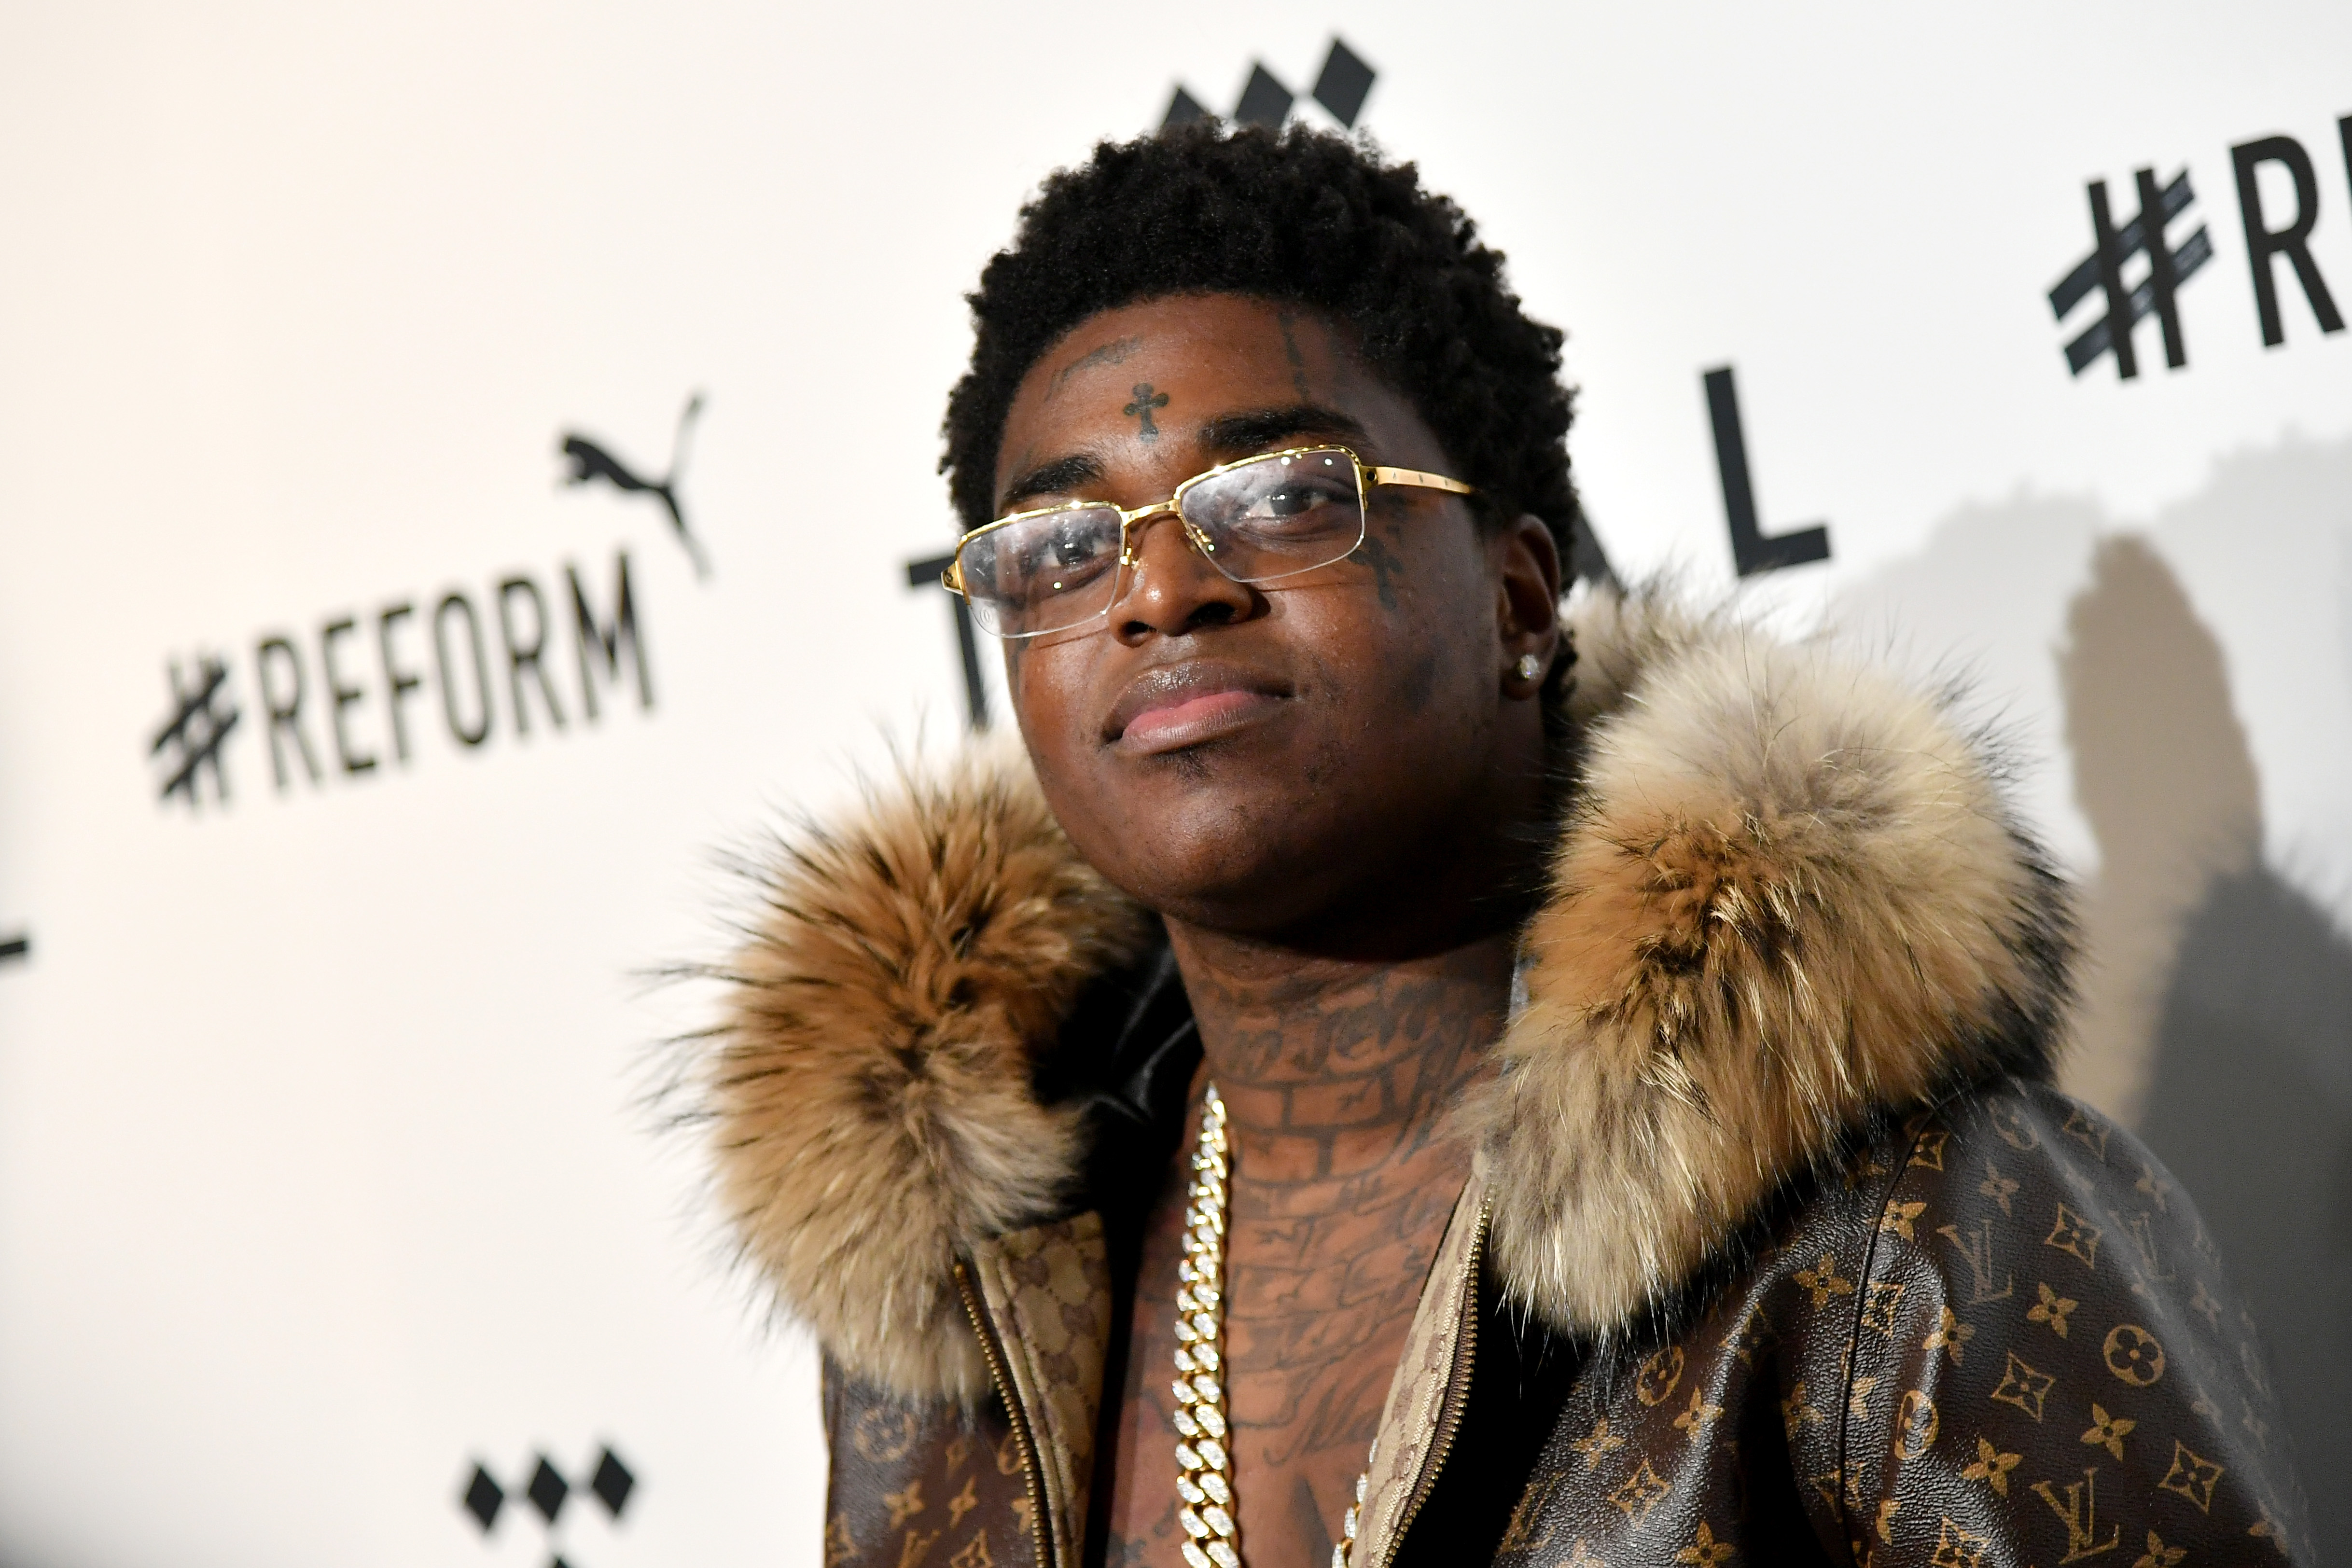 Controversial rapper Kodak Black 'missing' after he cancels Boston gig last minute